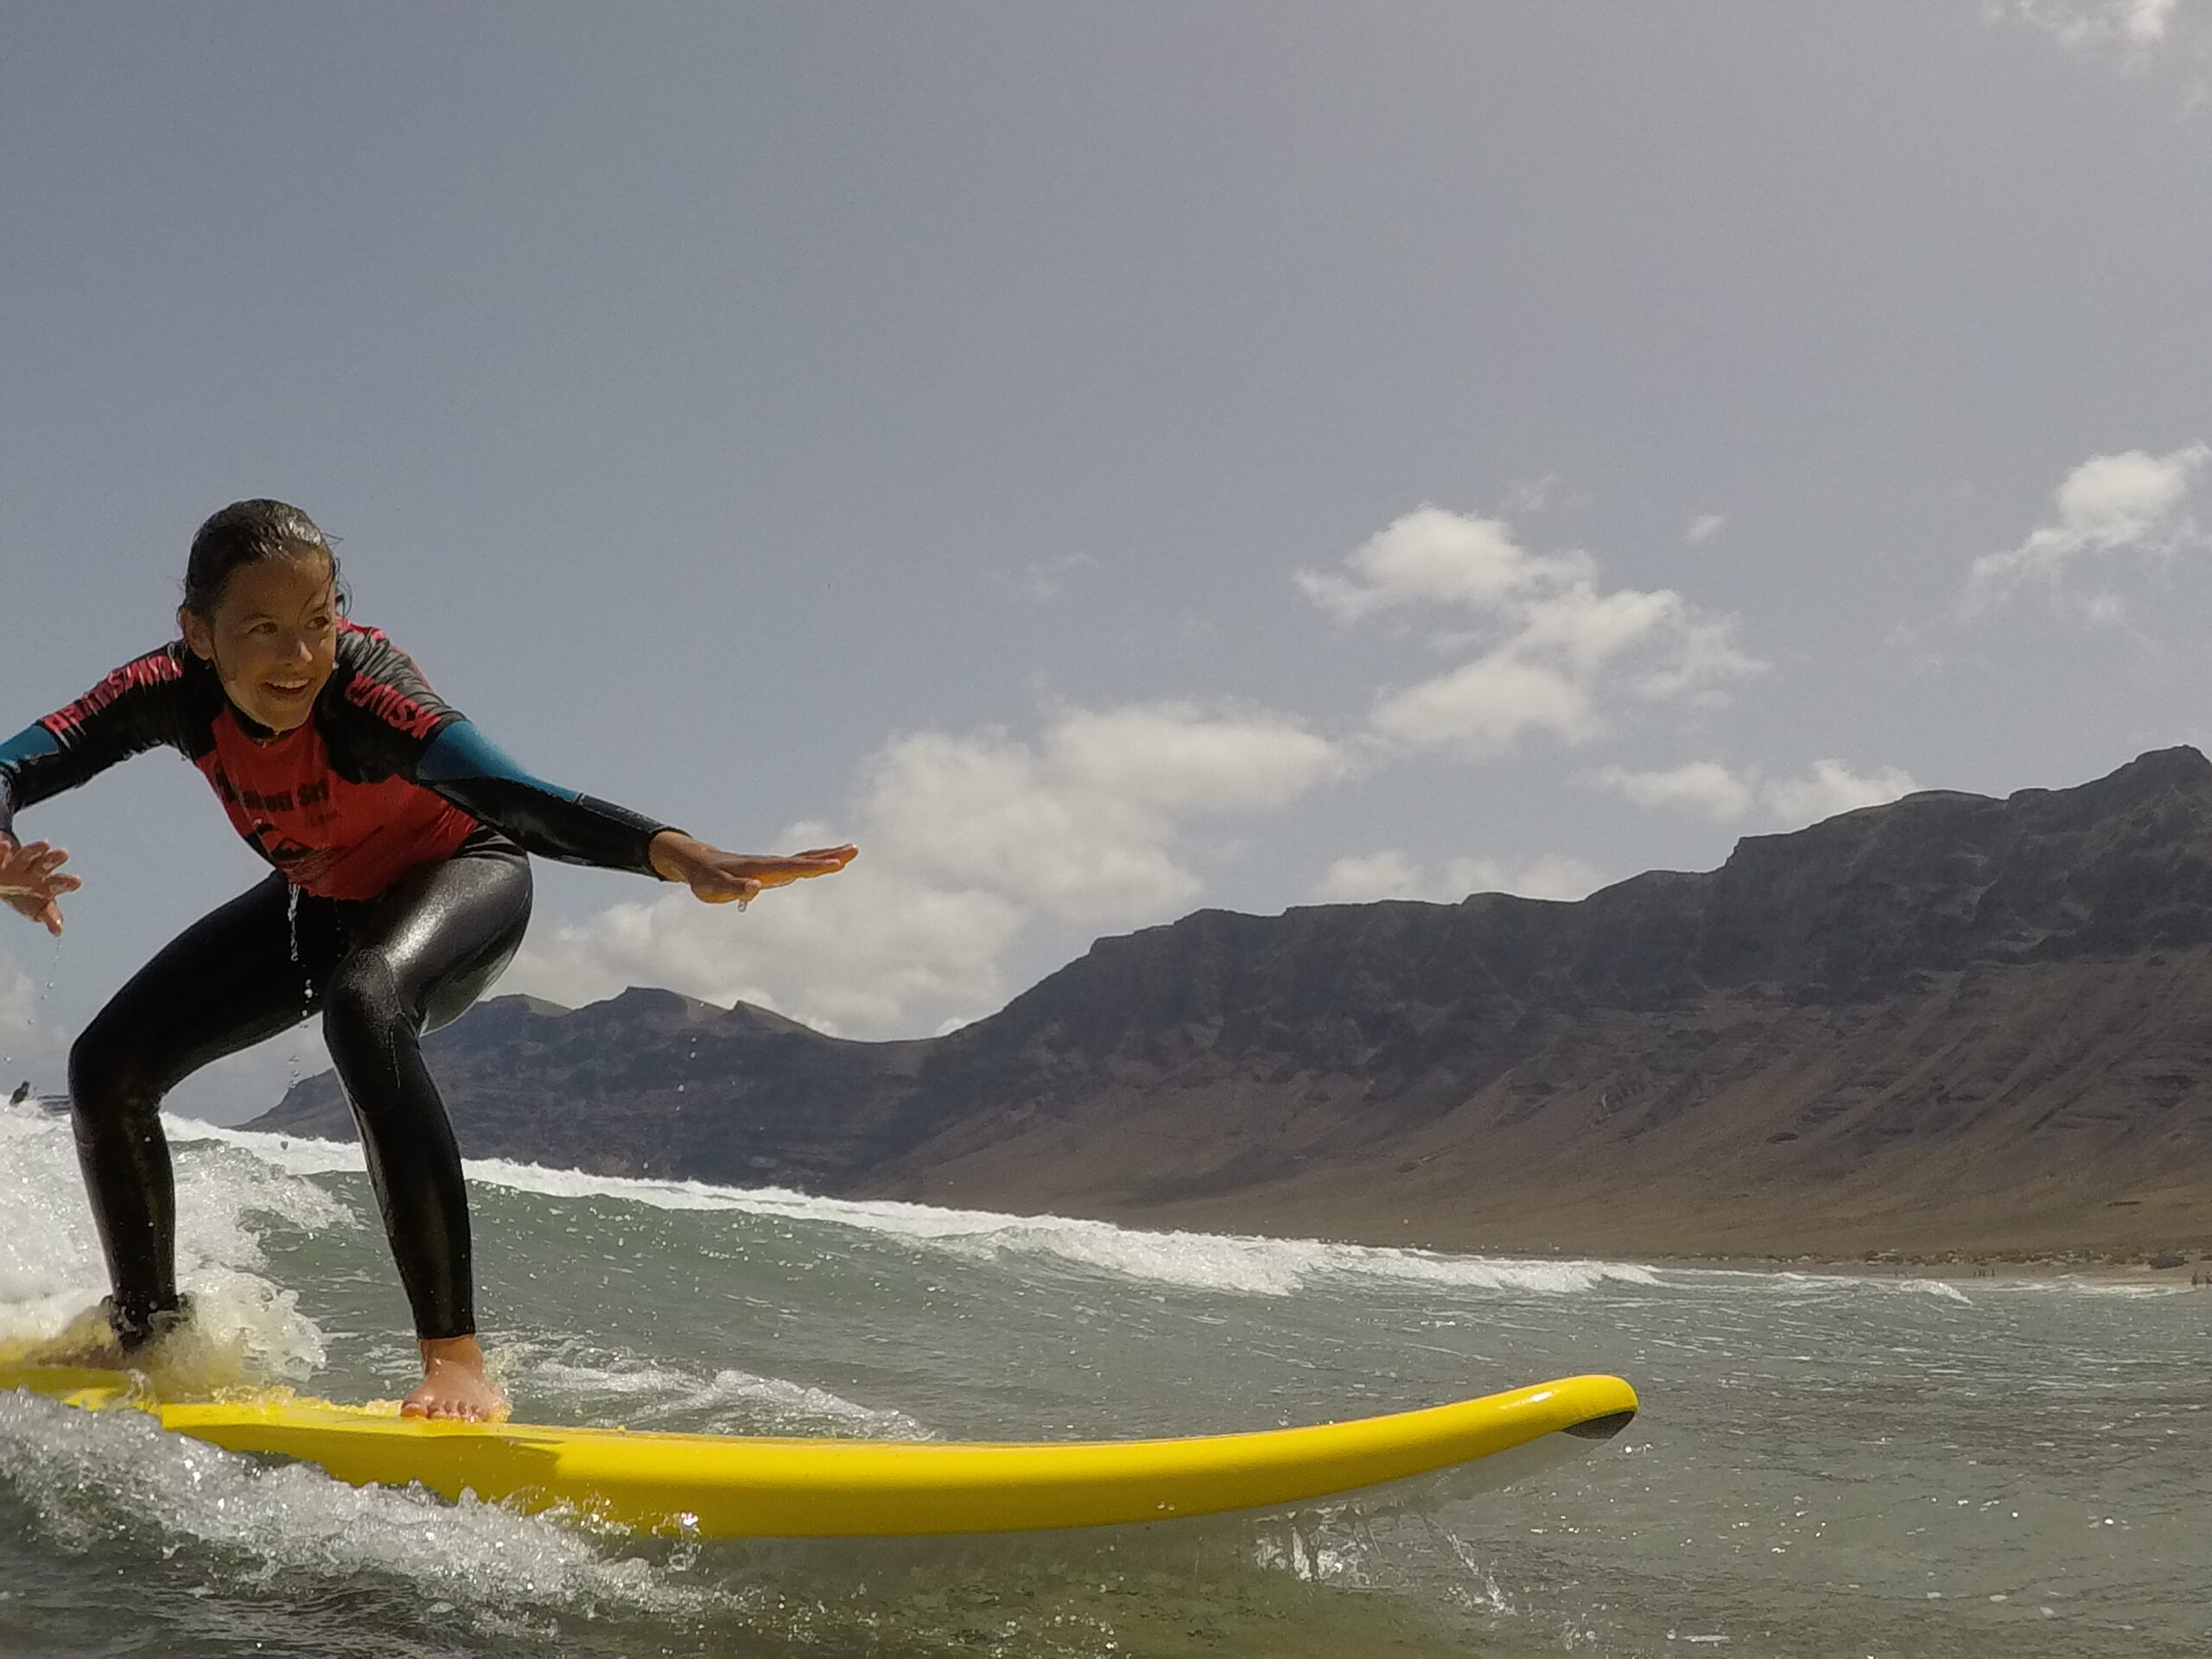 I want to learn to surf but, where should I start?